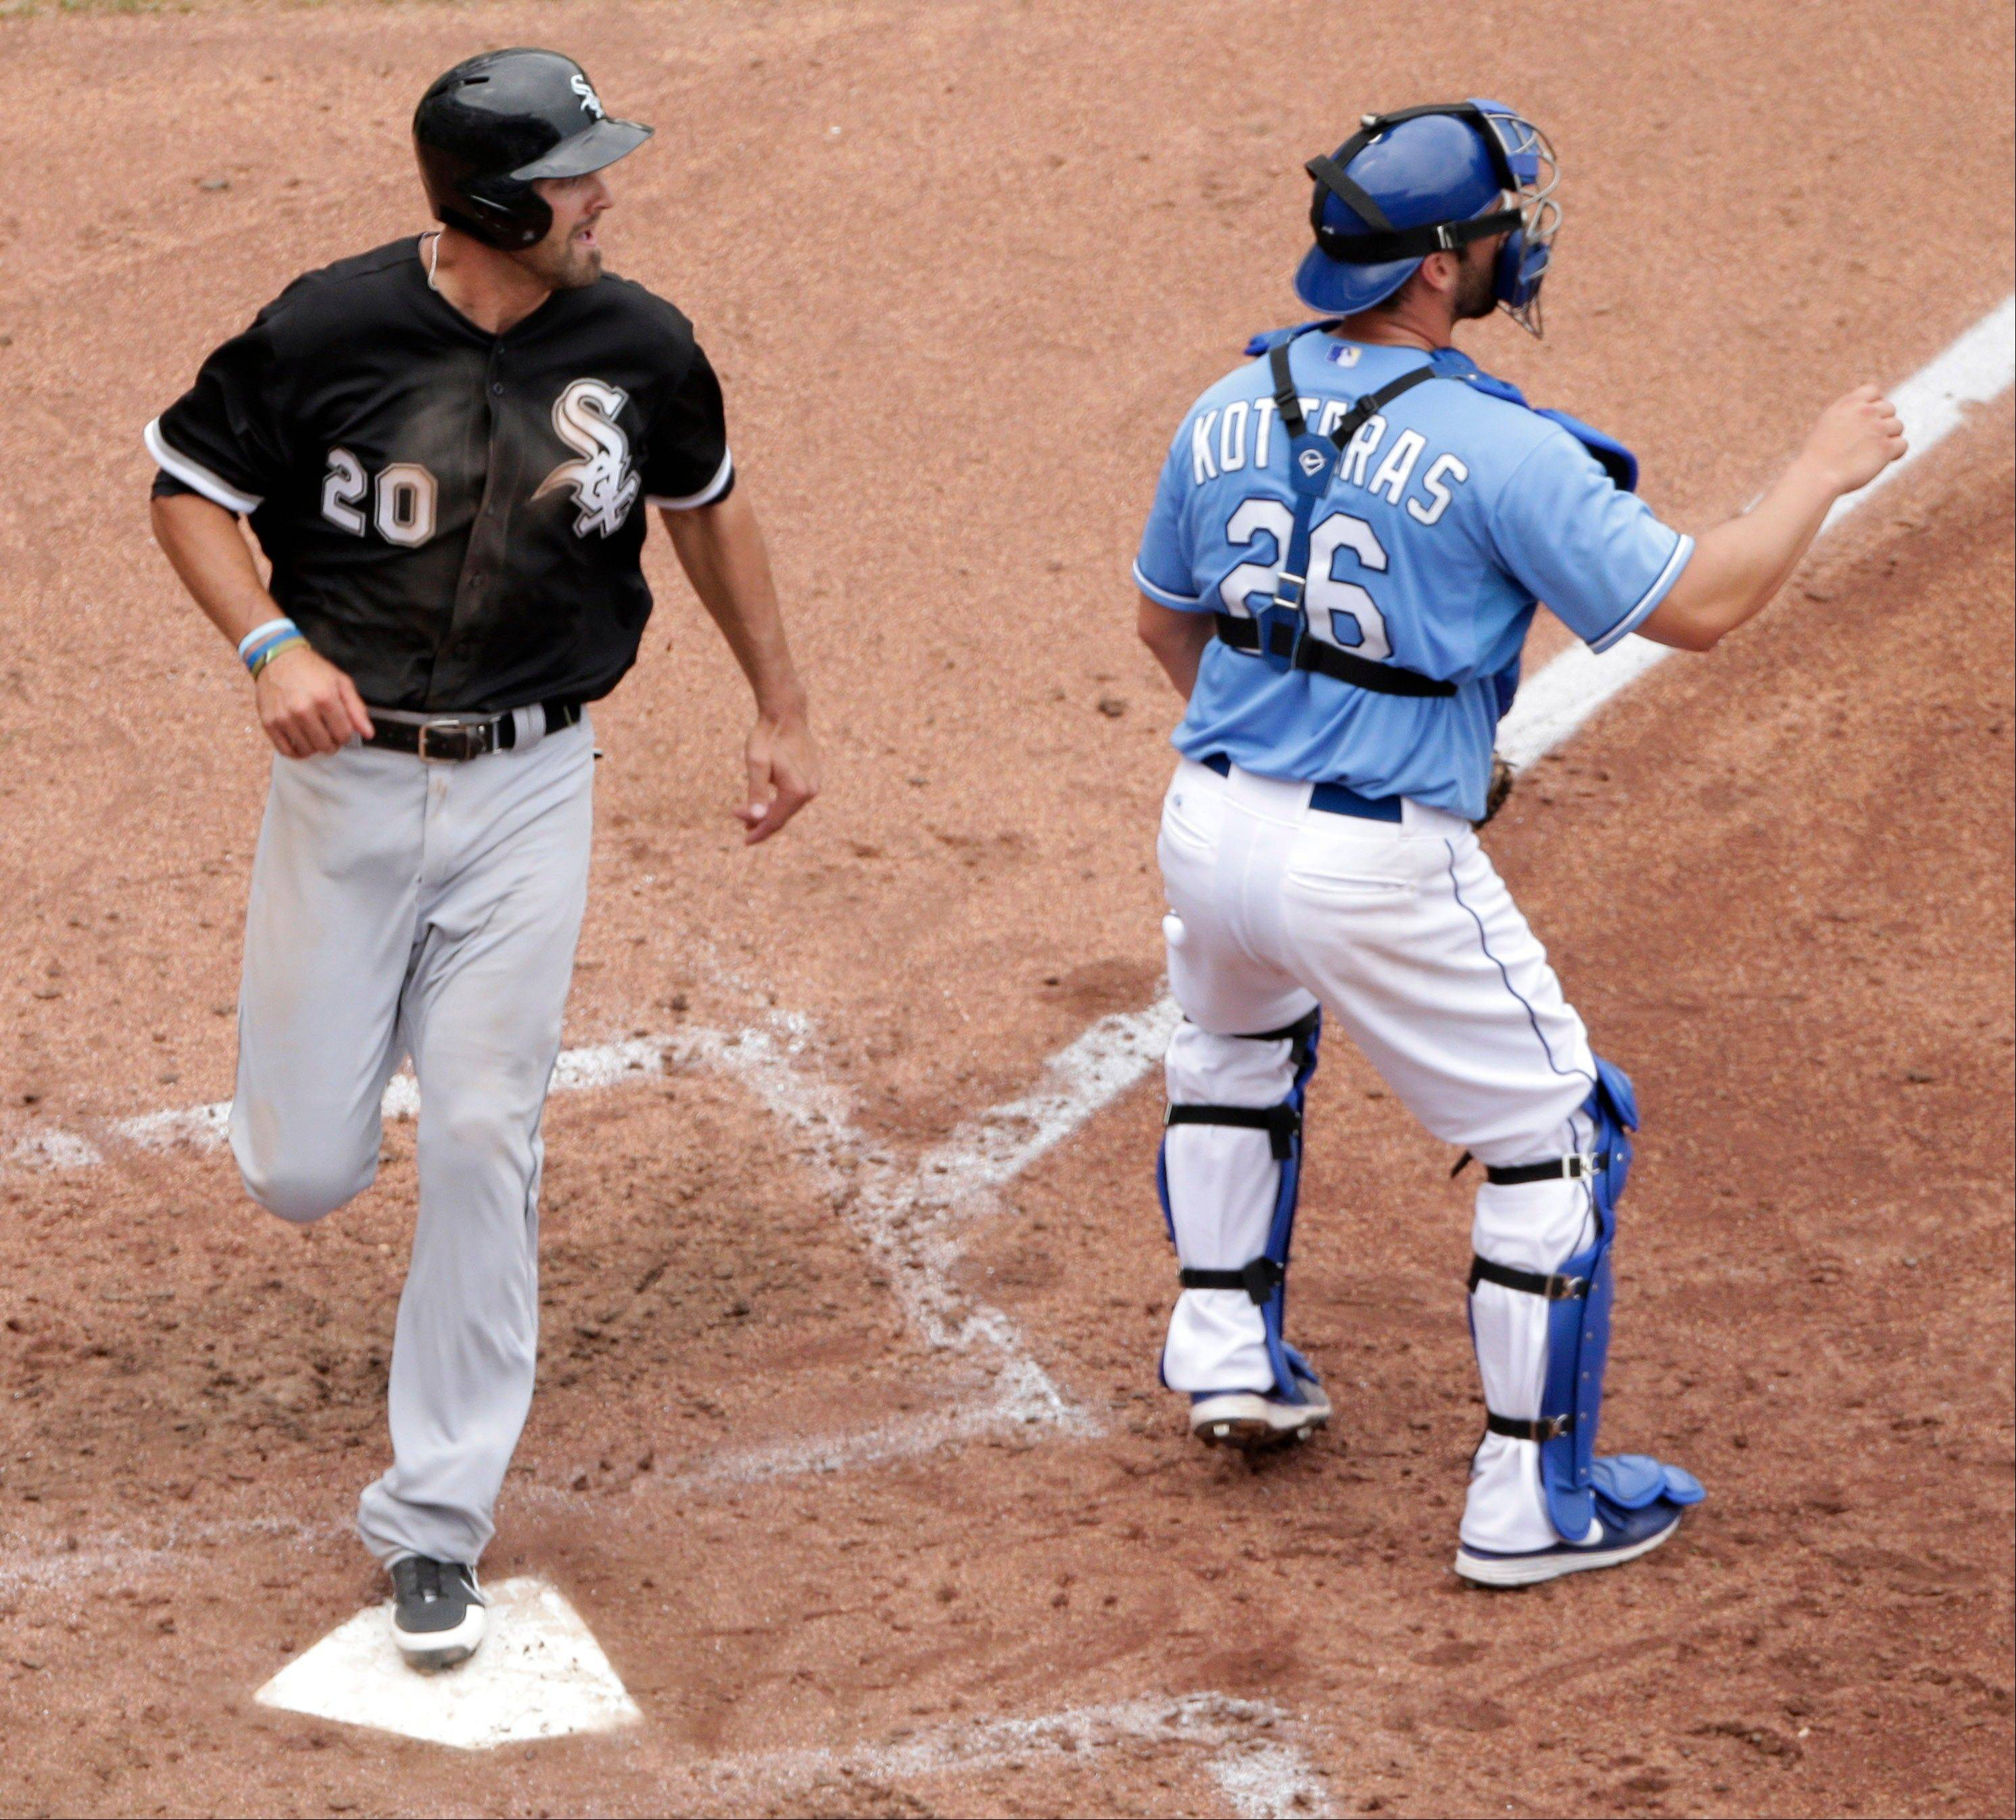 The Chicago White Sox' Jordan Danks runs past Kansas City Royals catcher George Kottaras to score on a double by Gordon Beckham during the seventh inning of a baseball game, Sunday, June 23, 2013, in Kansas City, Mo.